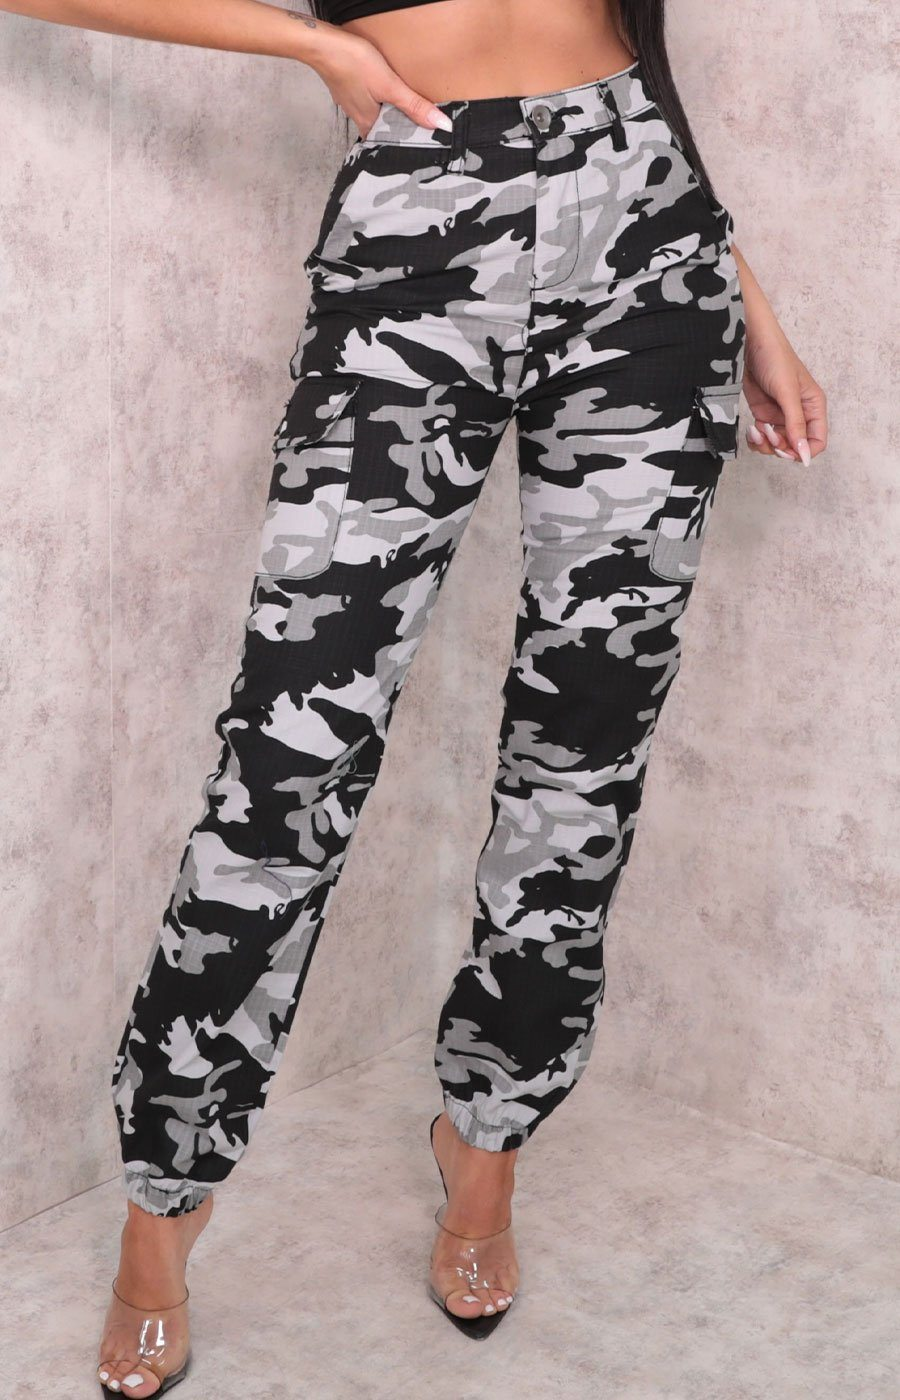 Black & White Camo Print Elasticated Trousers - Casandra